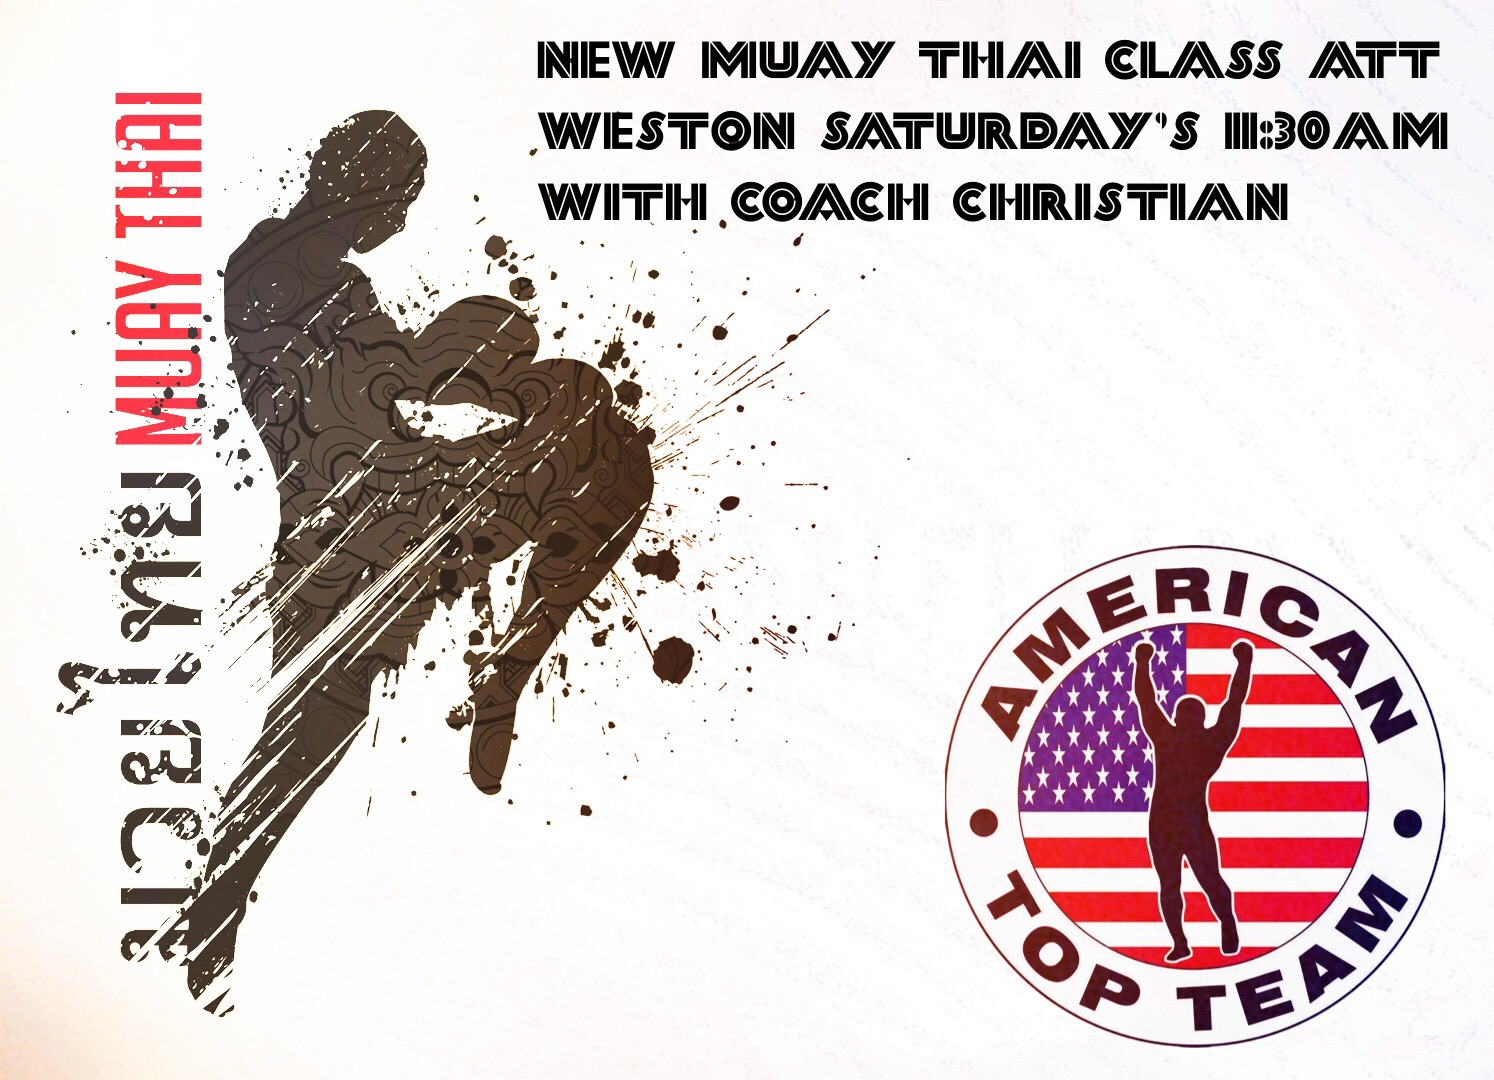 New MUAY THAI class at ATT WESTON